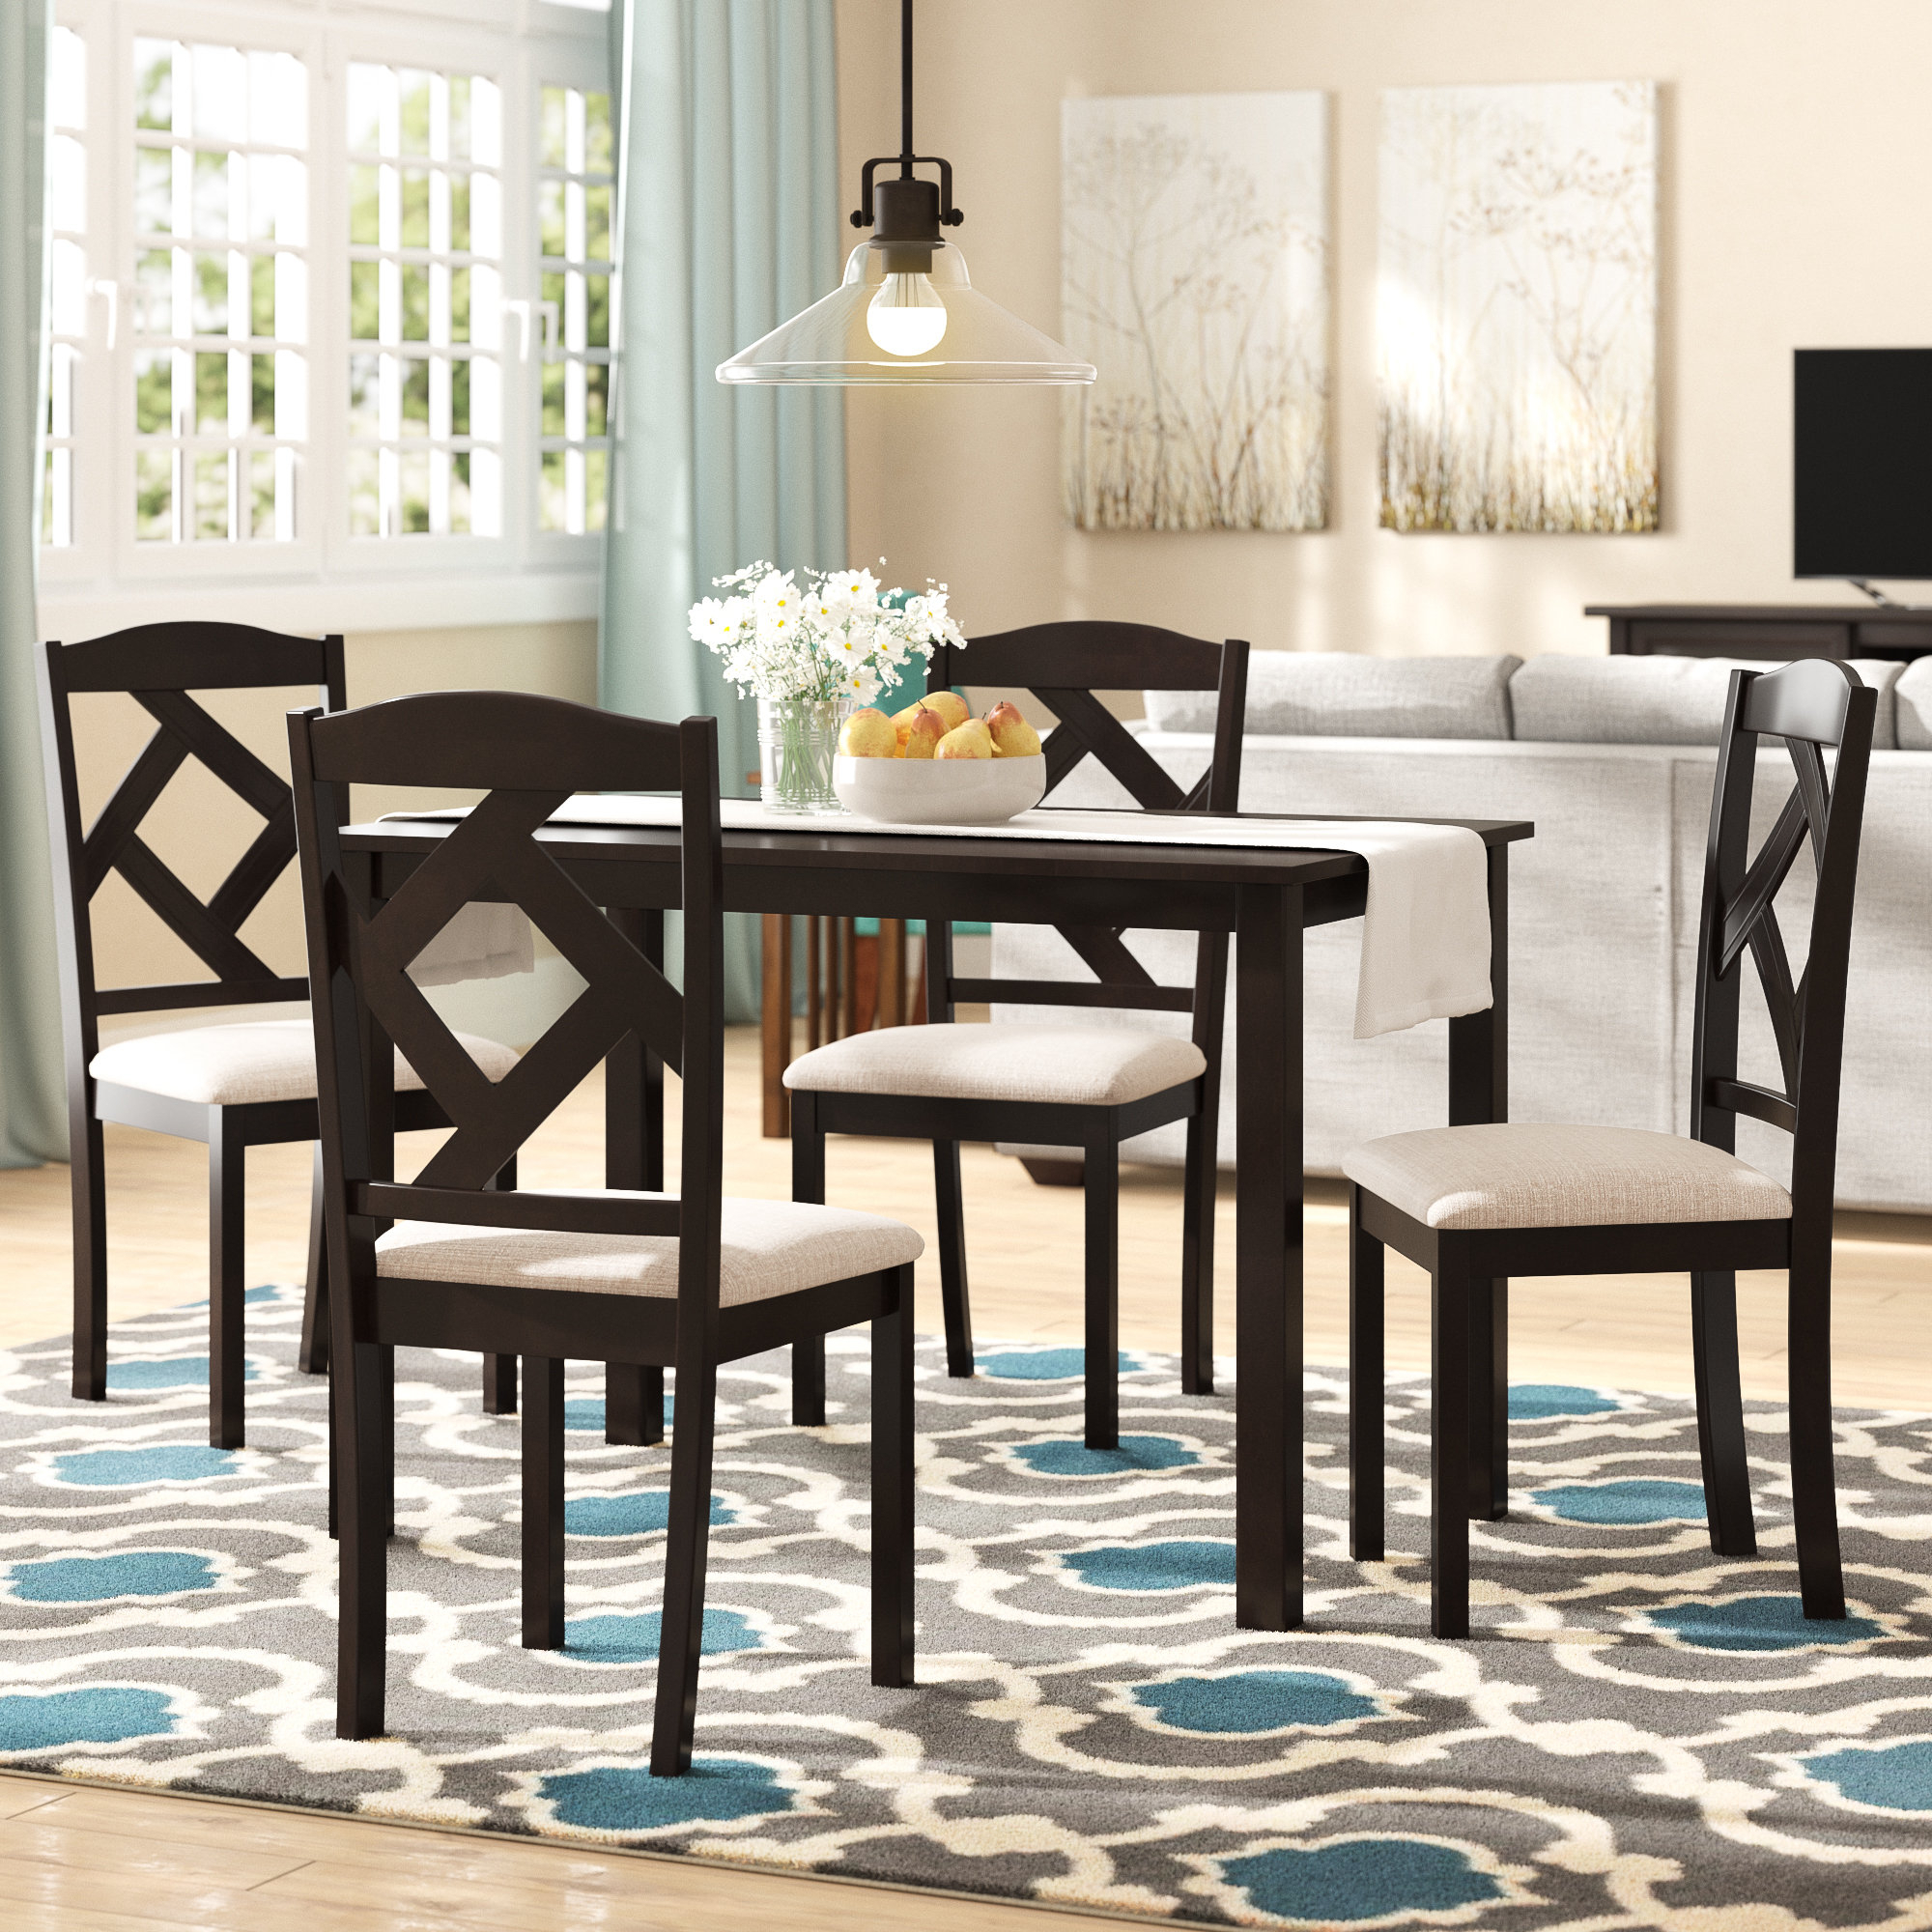 Goosman Modern And Contemporary 5 Piece Breakfast Nook Dining Set Intended For Most Recent 5 Piece Breakfast Nook Dining Sets (Photo 1 of 20)